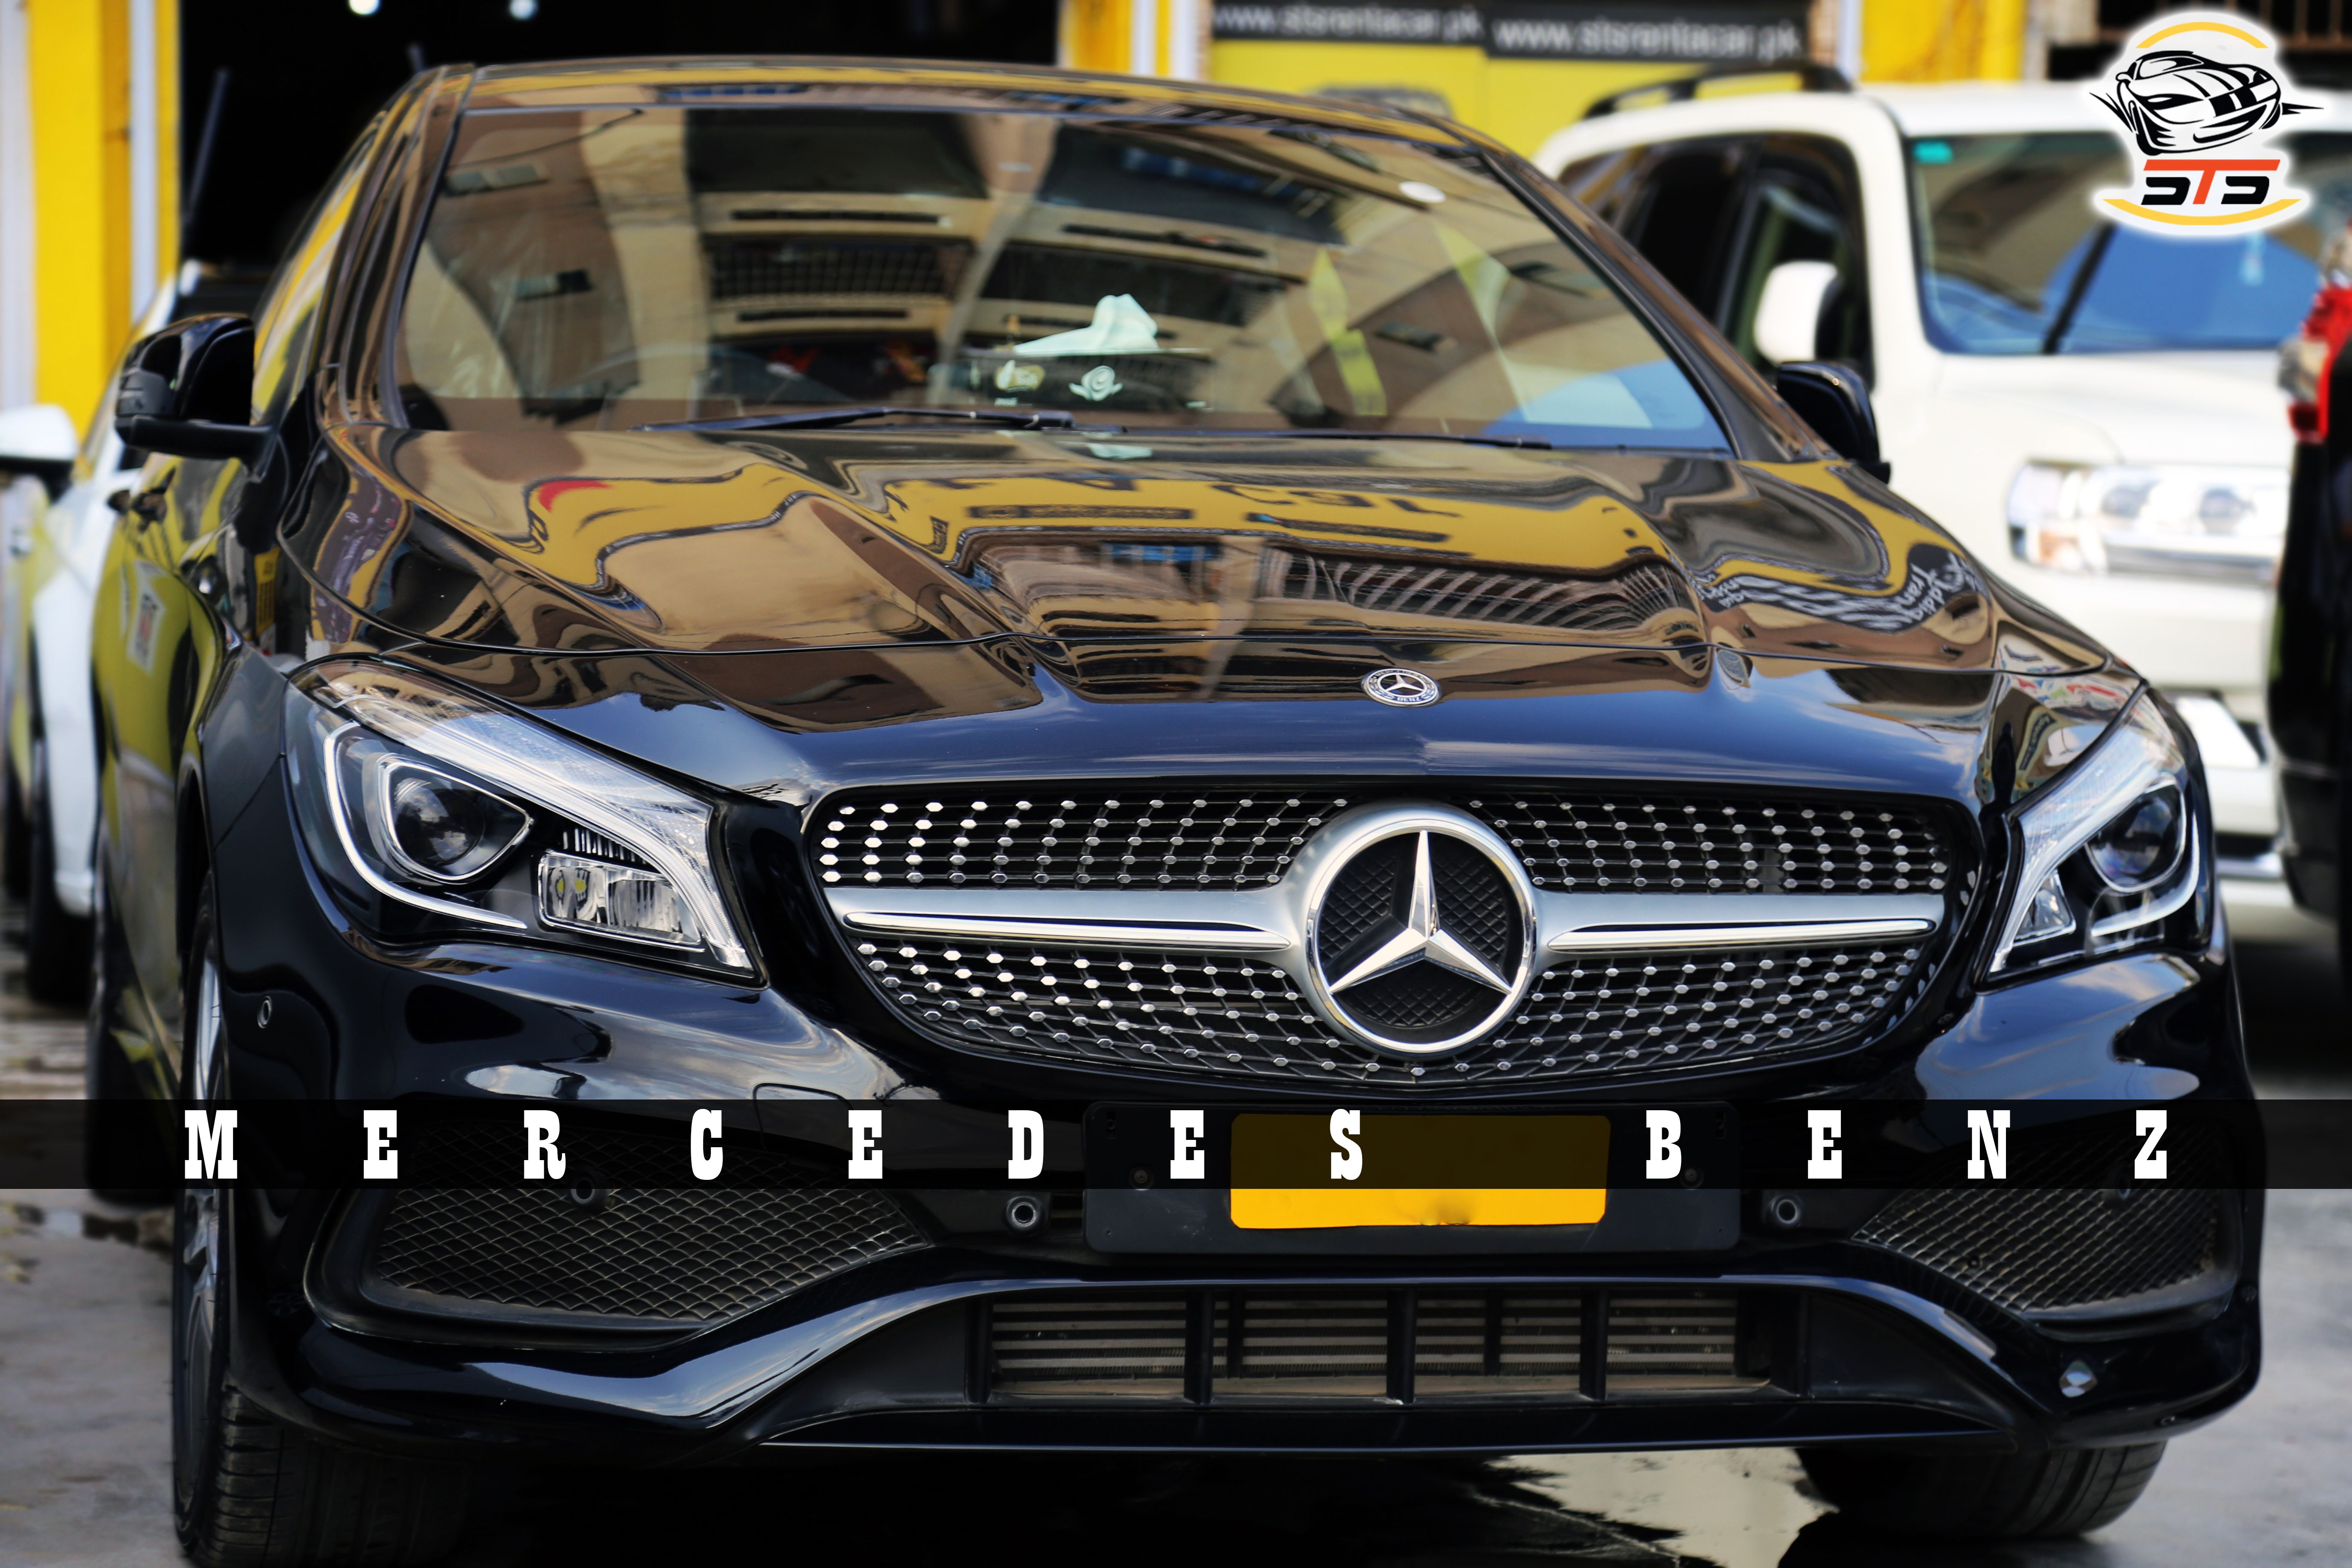 Big Name Biggest Brand Mercedes Benz Brand New 2018 With A Glorious Shape At Sts Rent A Car Call Us 03 111 999 787 Car Limousi Rent A Car Car Reliable Cars